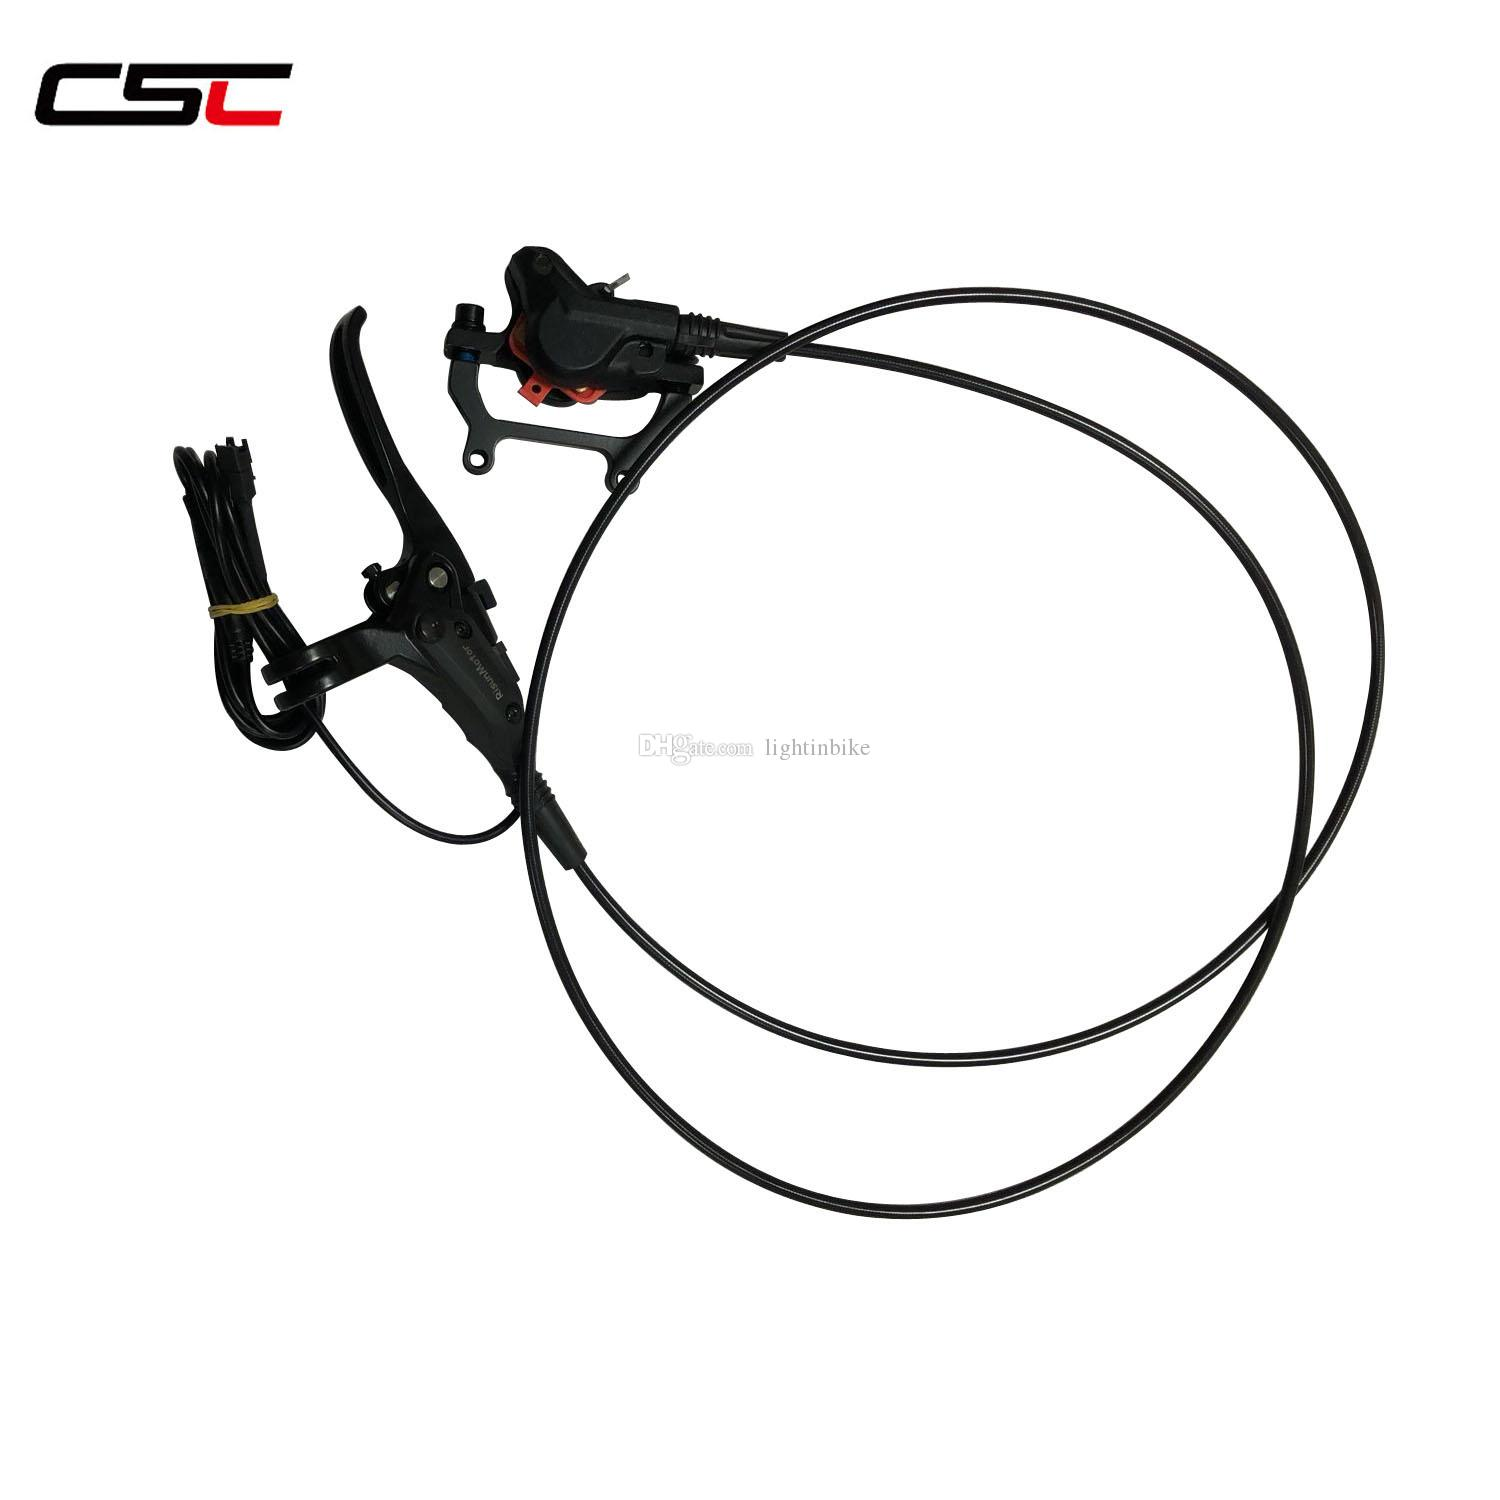 Can Cut Off Power for Electric Bike Controller Hydraulic Disc Brake RM-D700c